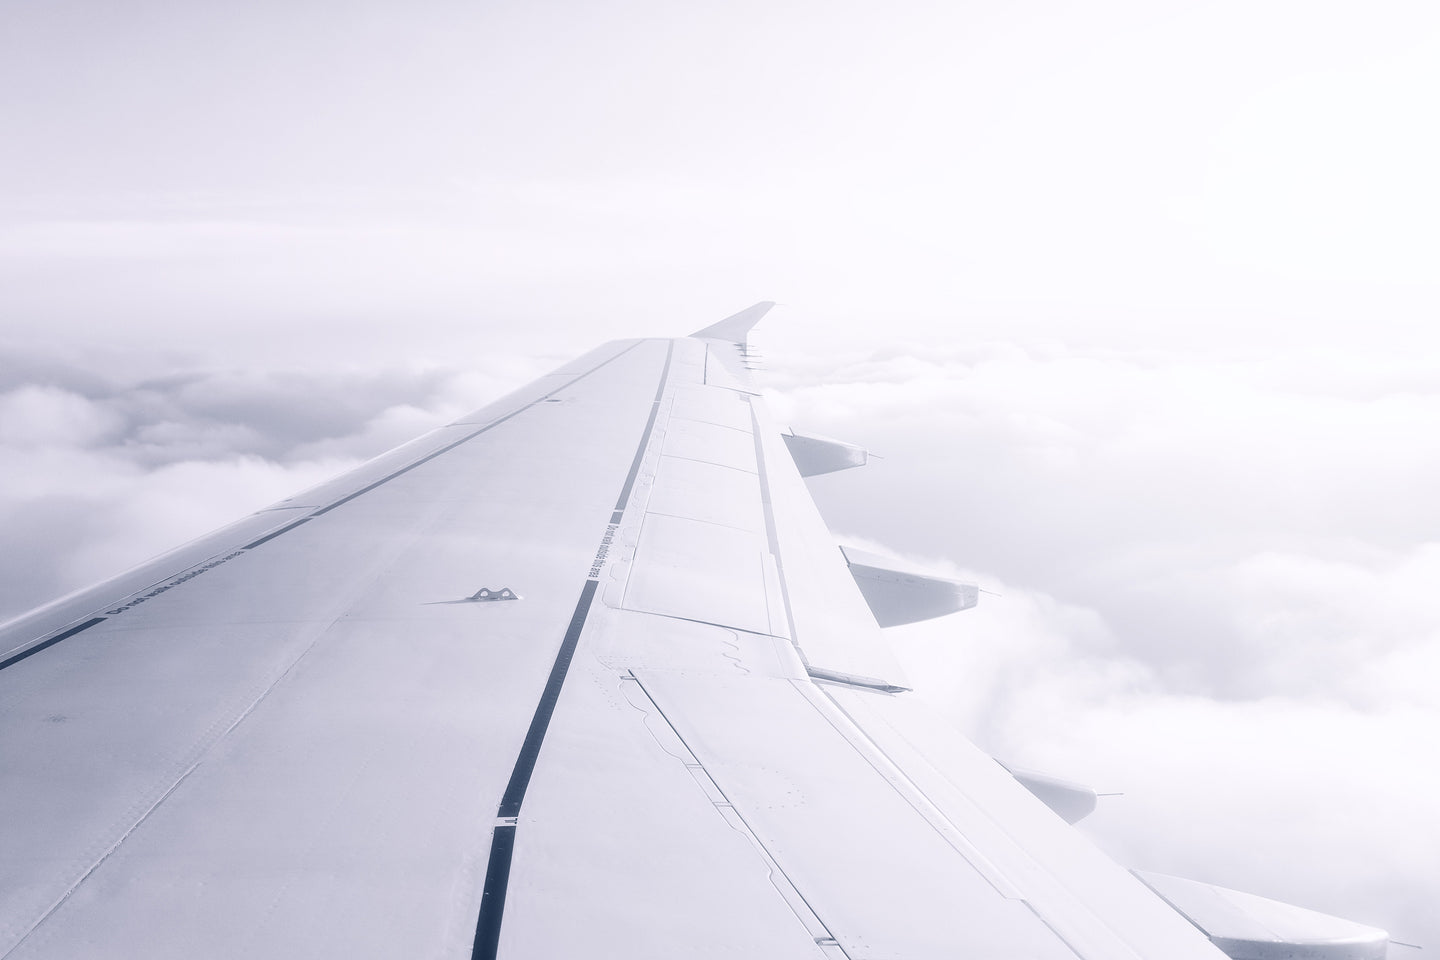 Aircraft wing - W-Photographie